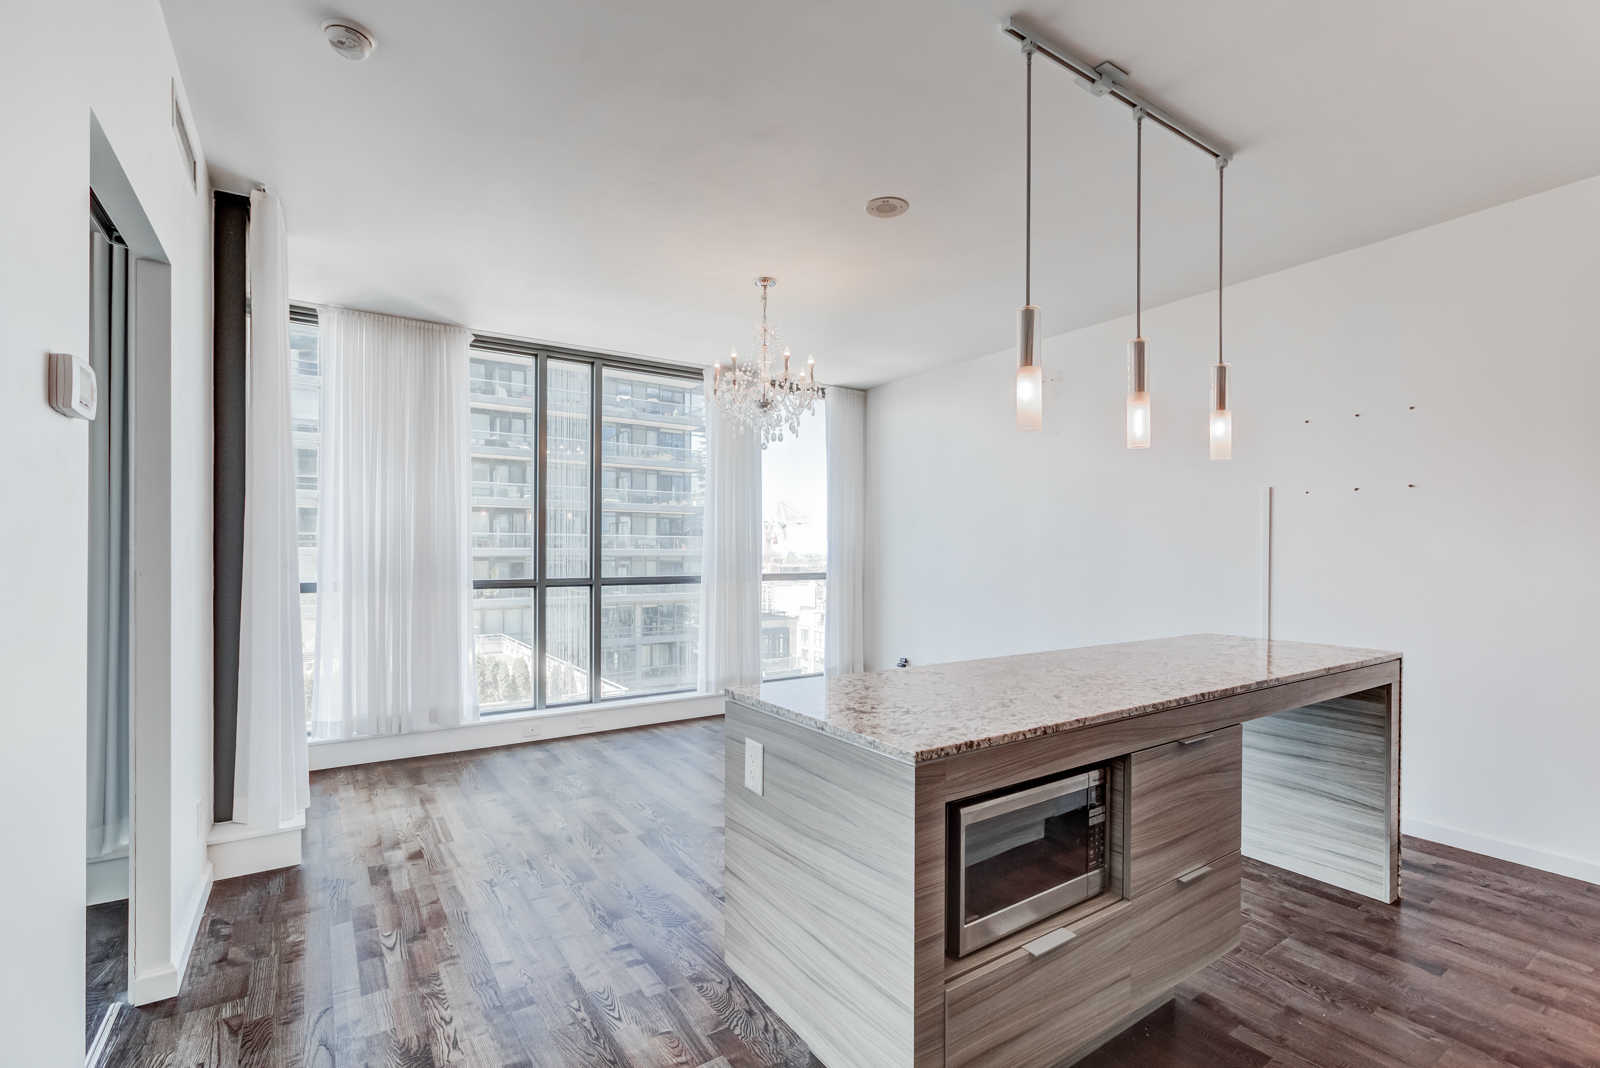 Brightly lit condo living room and kitchen island with hanging lights.